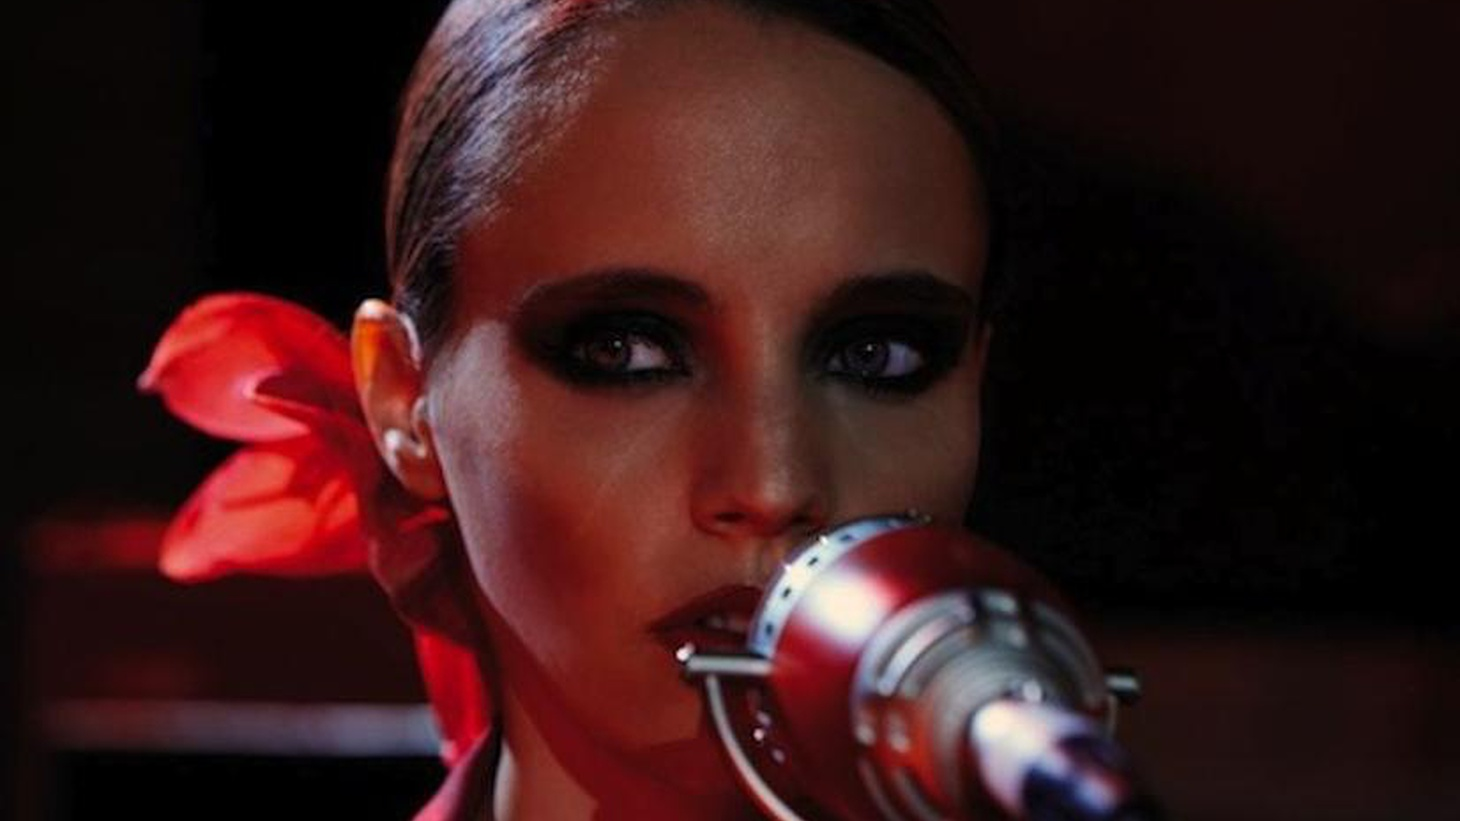 Experimental guitarist Anna Calvi has been a KCRW favorite since her debut in 2011 and her new sophomore album has been at the top of our charts.